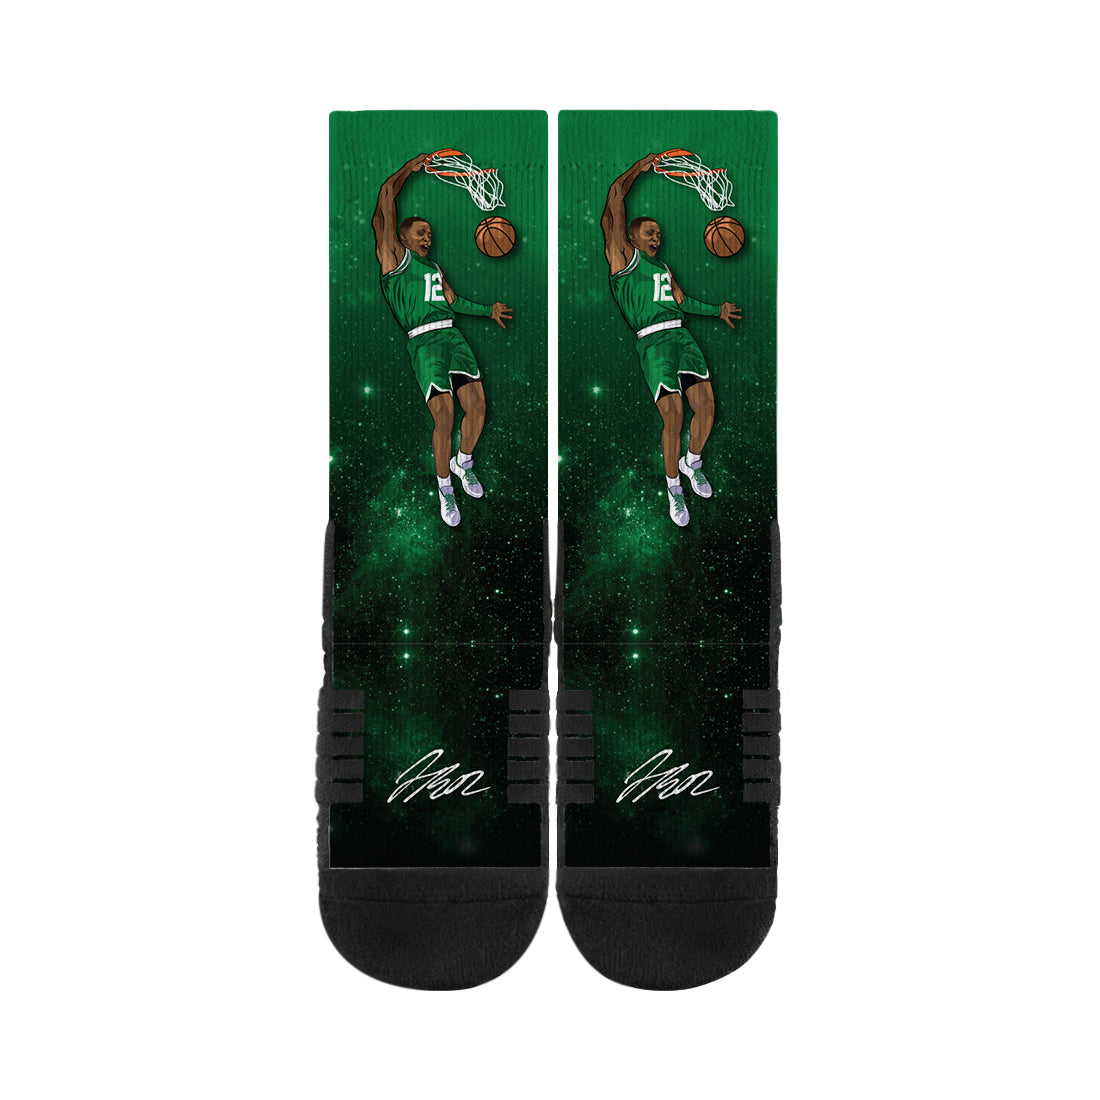 Terry Rozier Dunk Black Socks